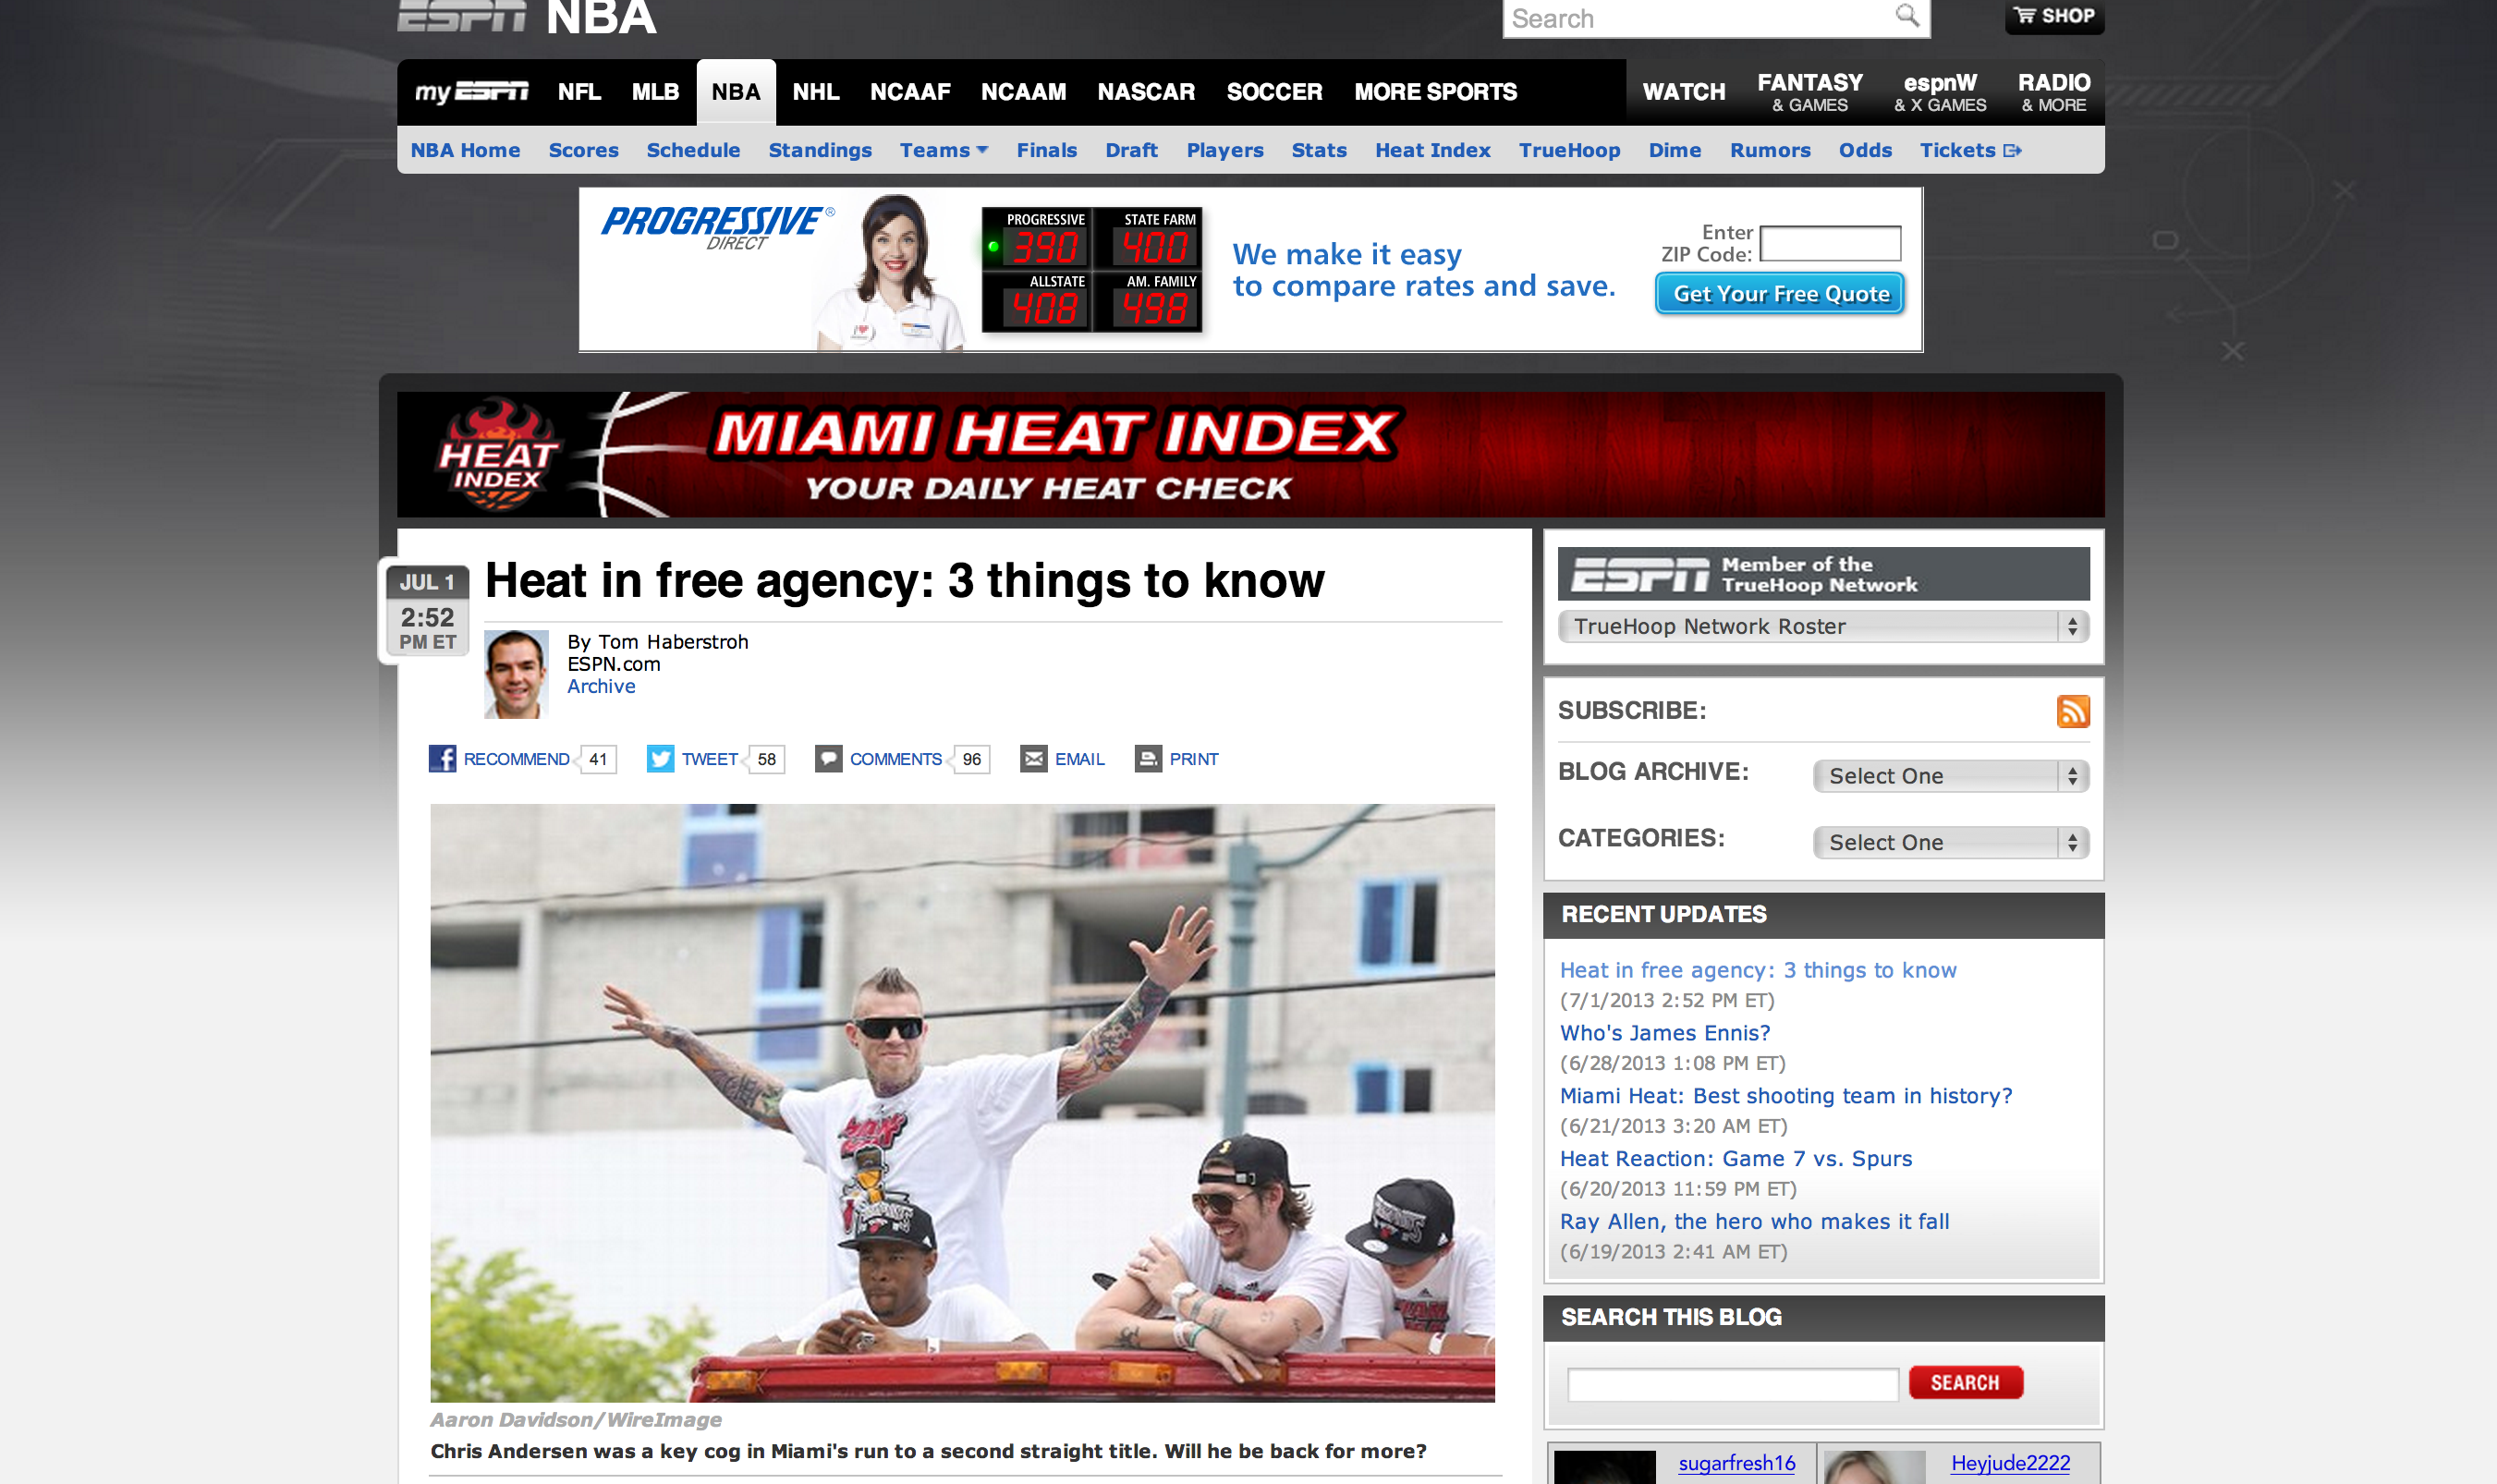 chris andersen miami heat championship